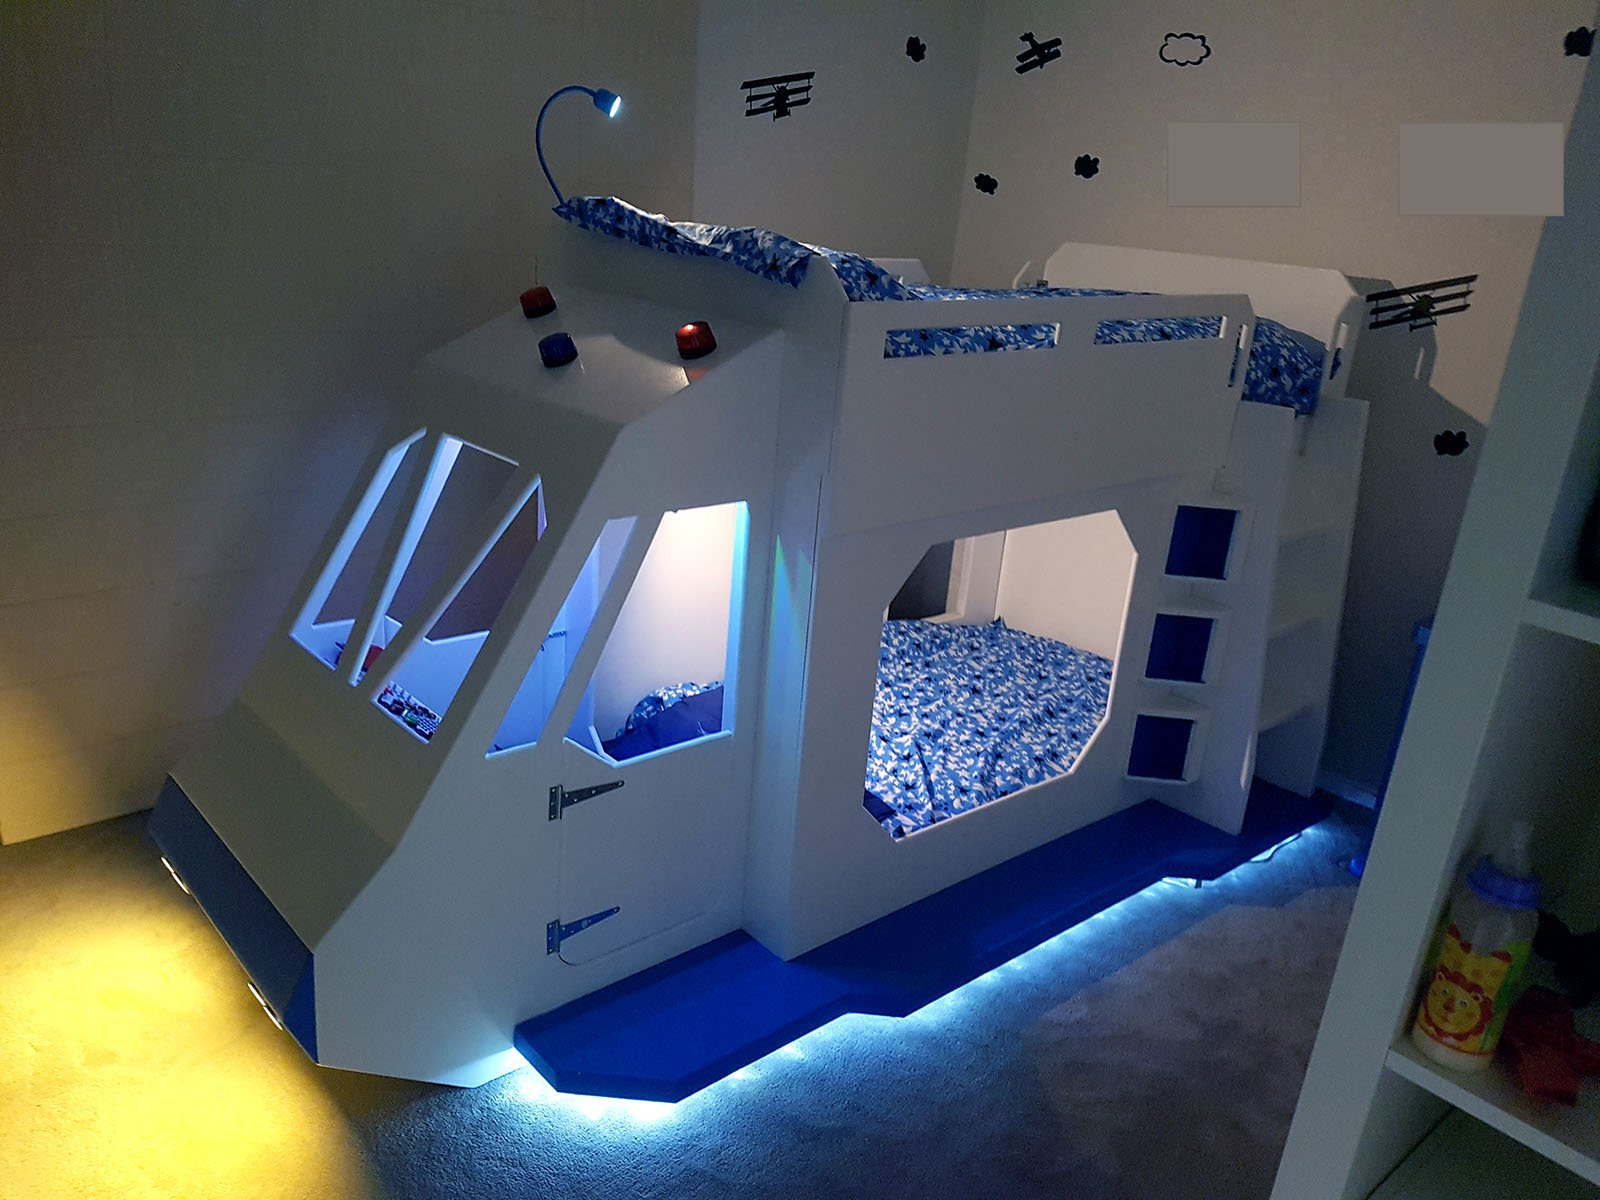 5...4...3...2...1...SPACESHIP BUNK BED!